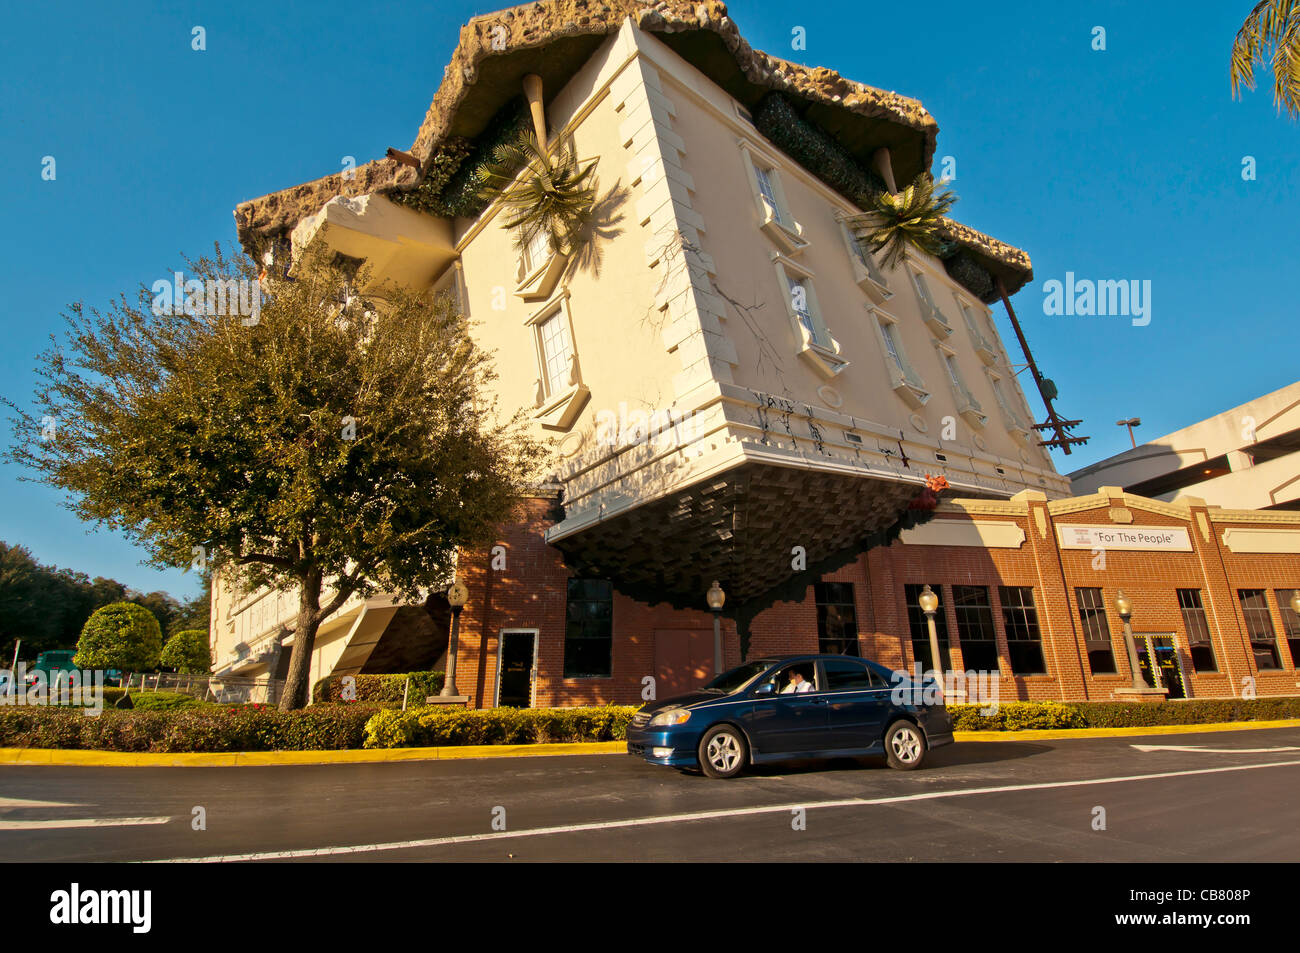 Wonderworks Attraction Upside Down Building With Auto For